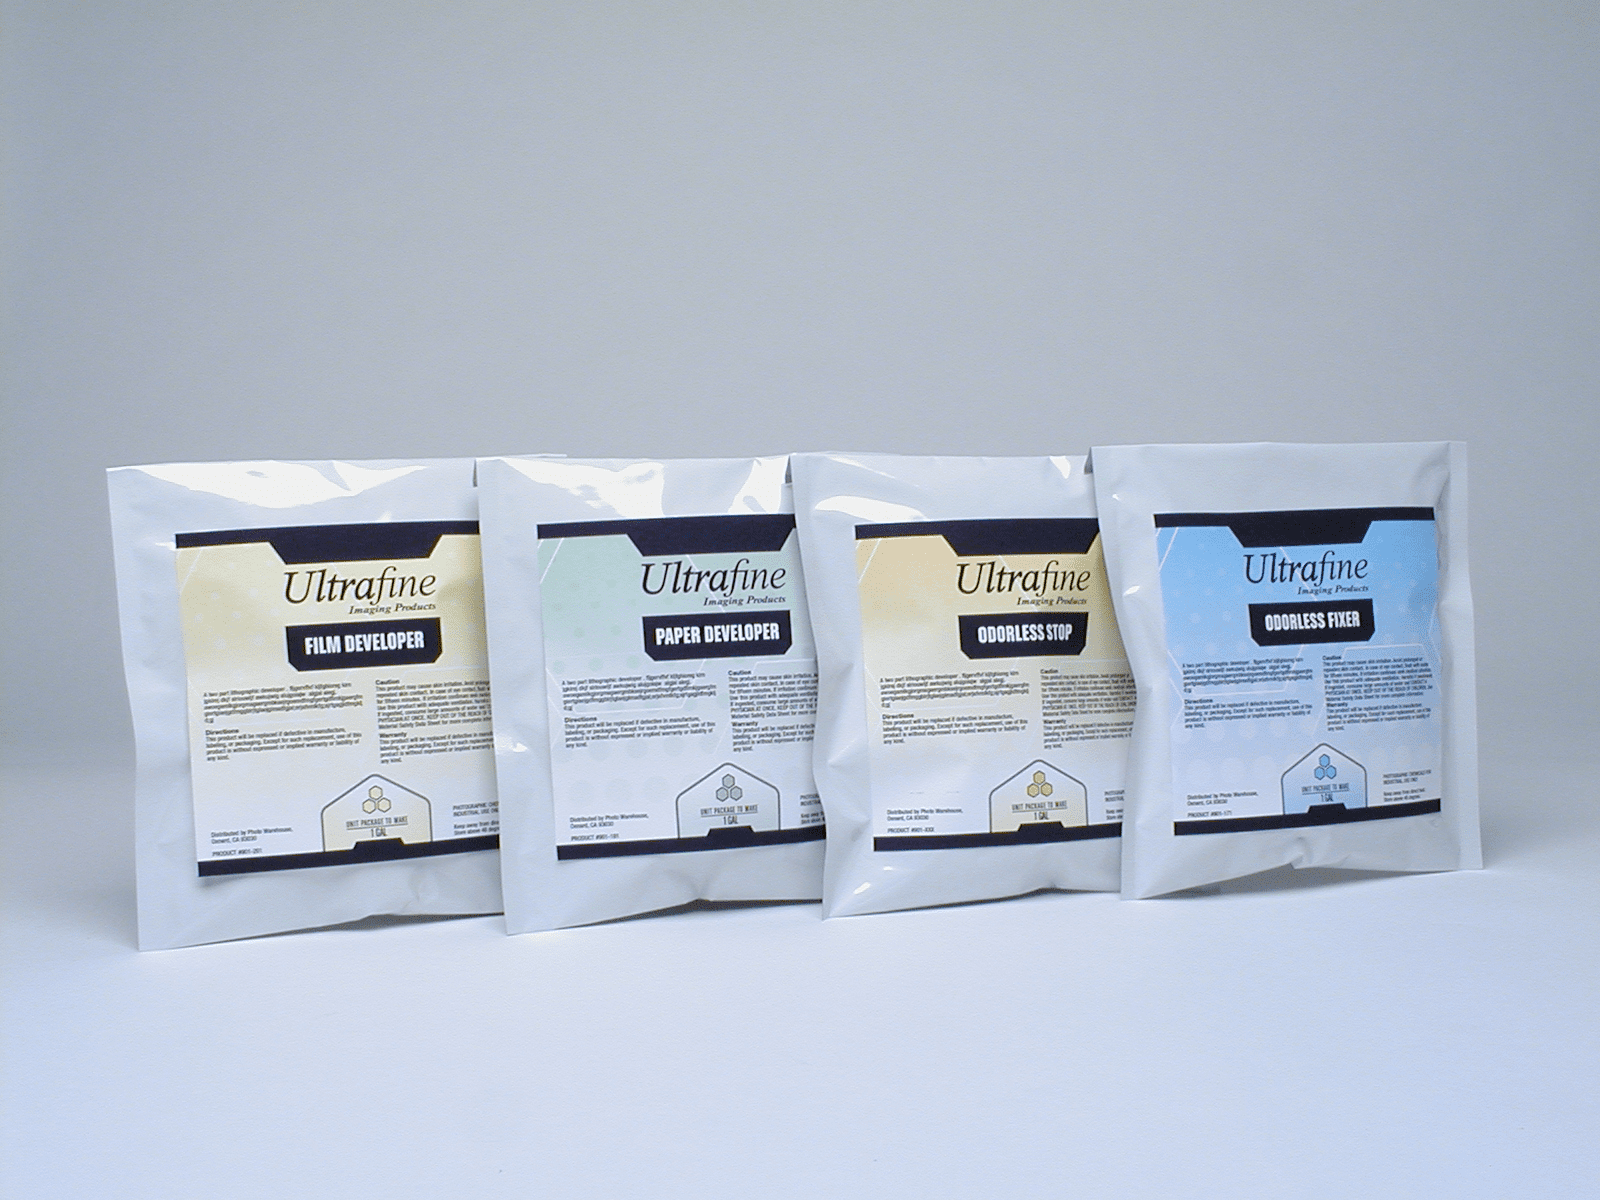 UltraFine B & W Photo Powder Chemicals